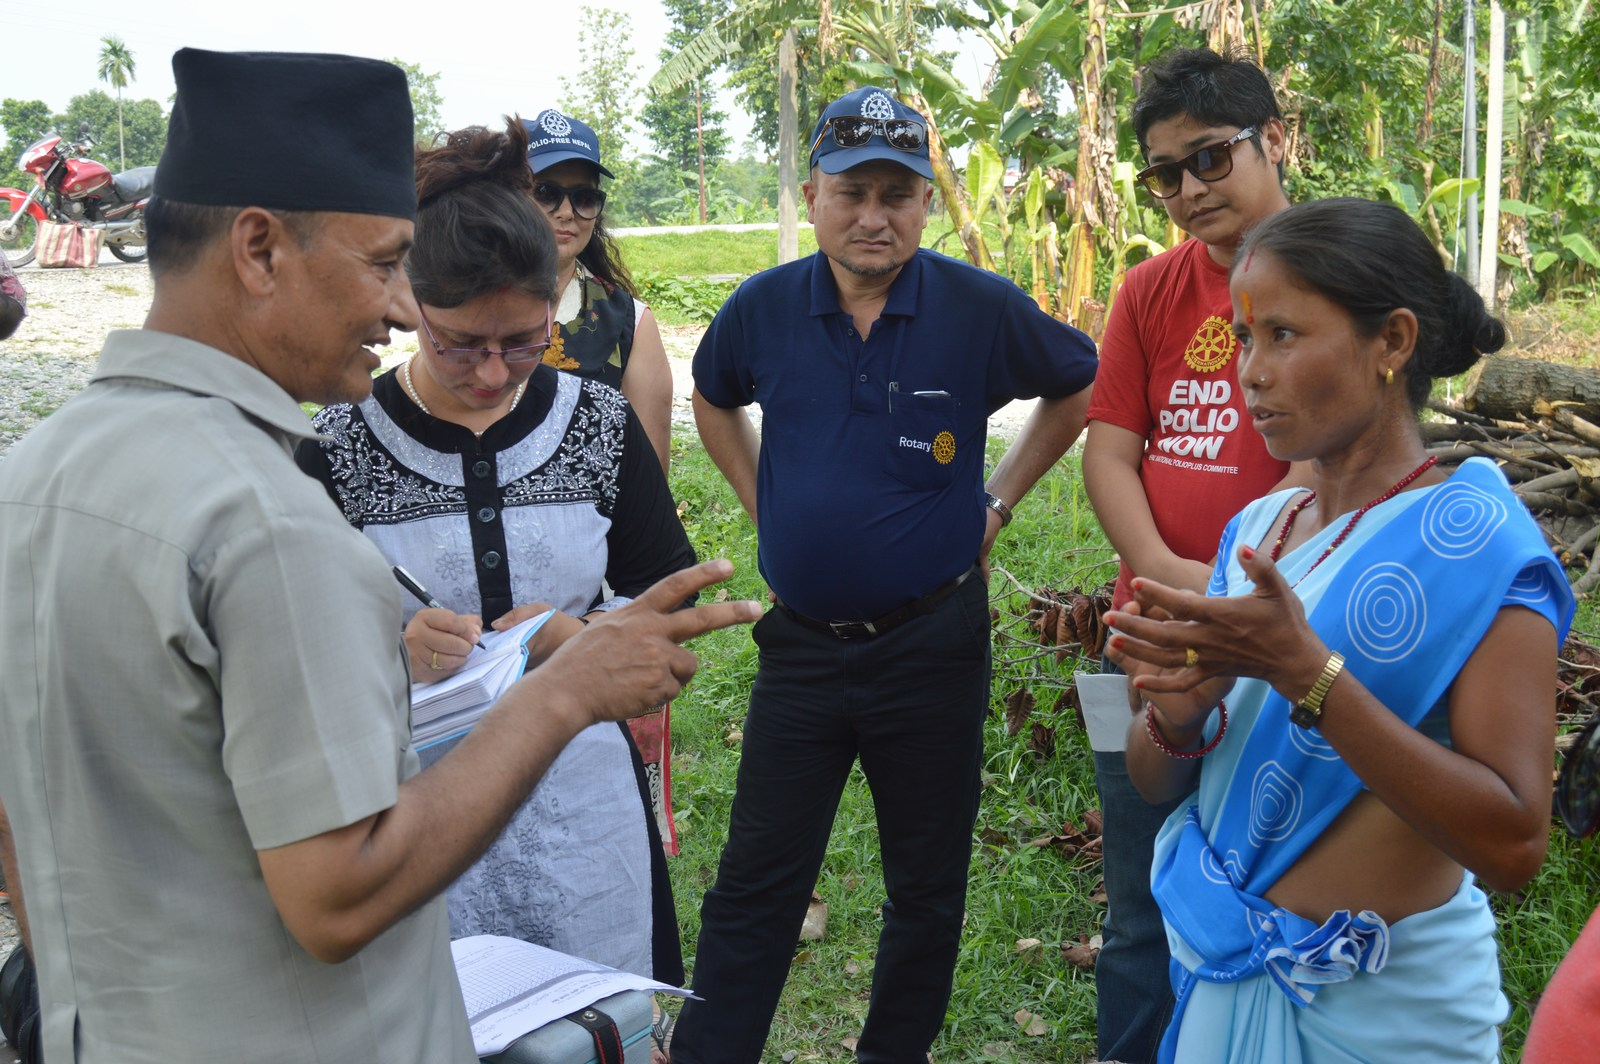 Polio Booth Inspection 58